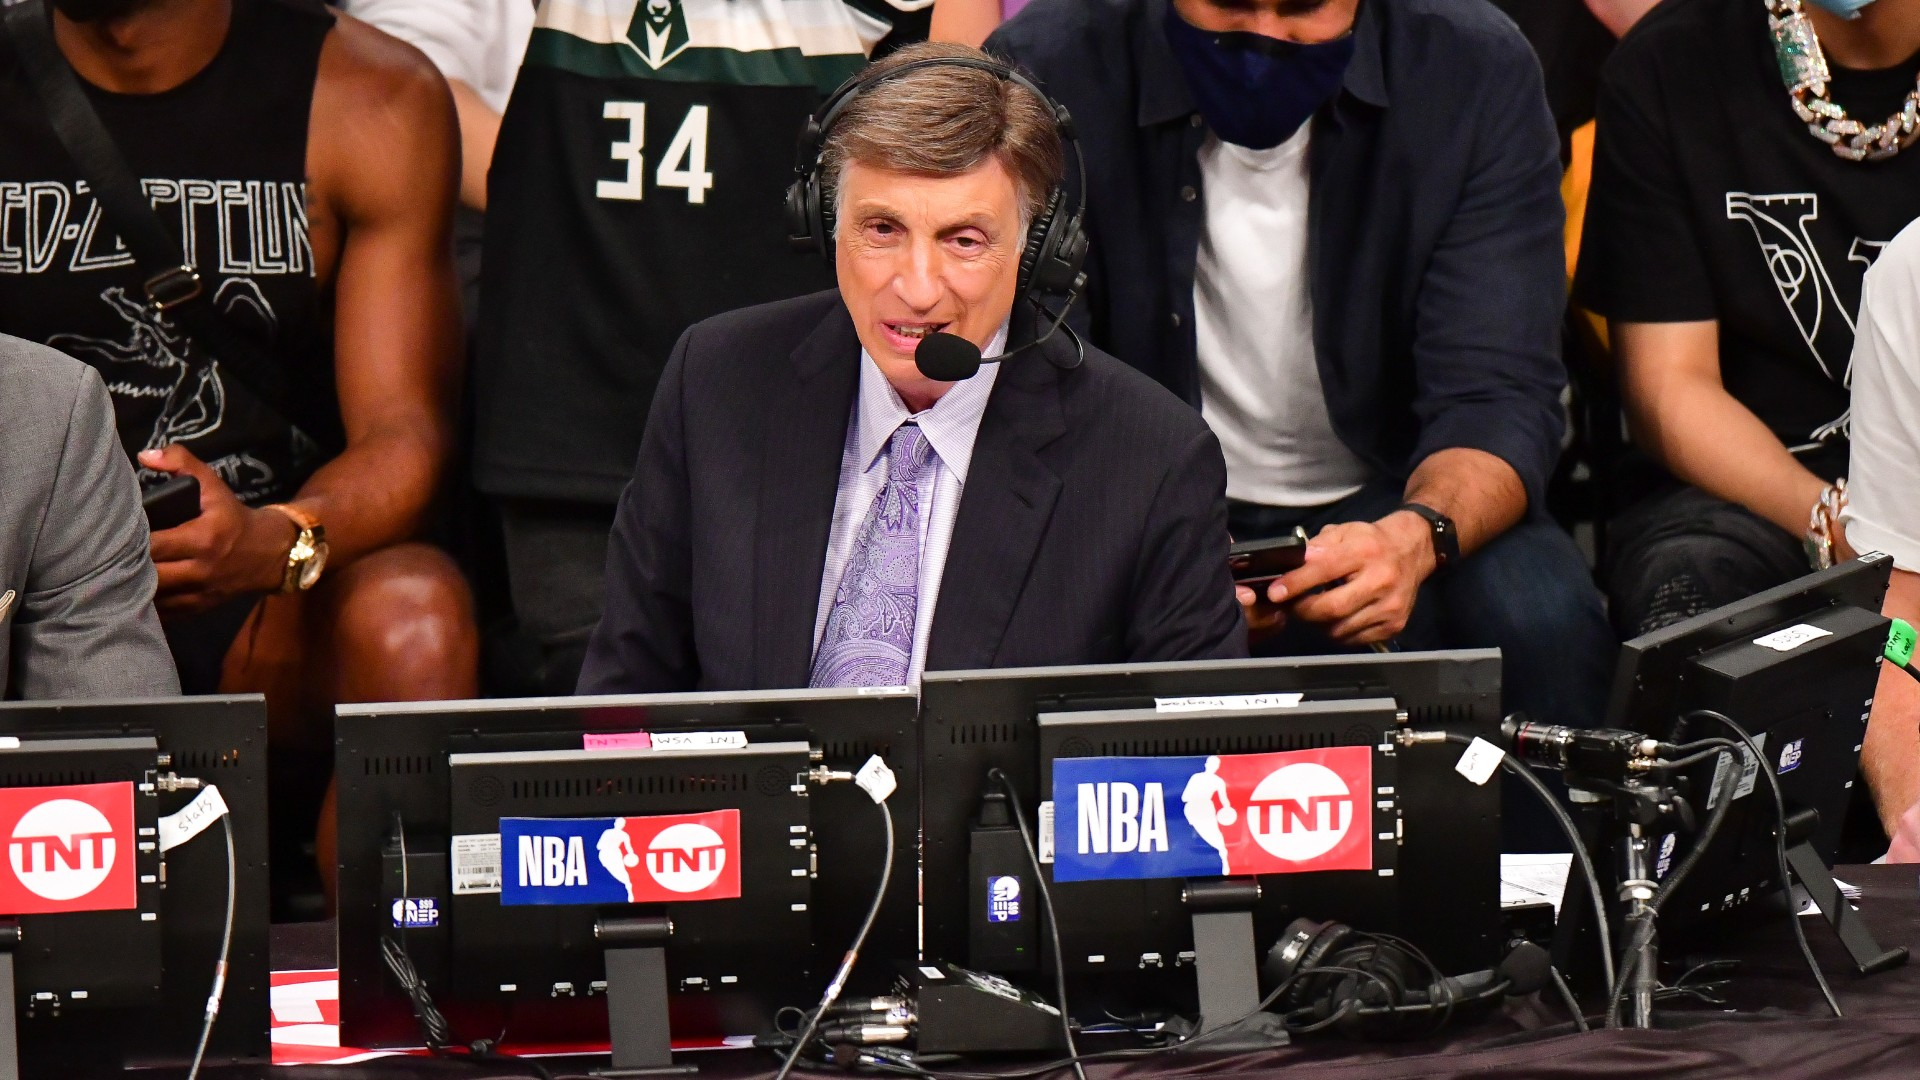 Marv Albert receives a warm farewell from colleagues at TNT after the final broadcast